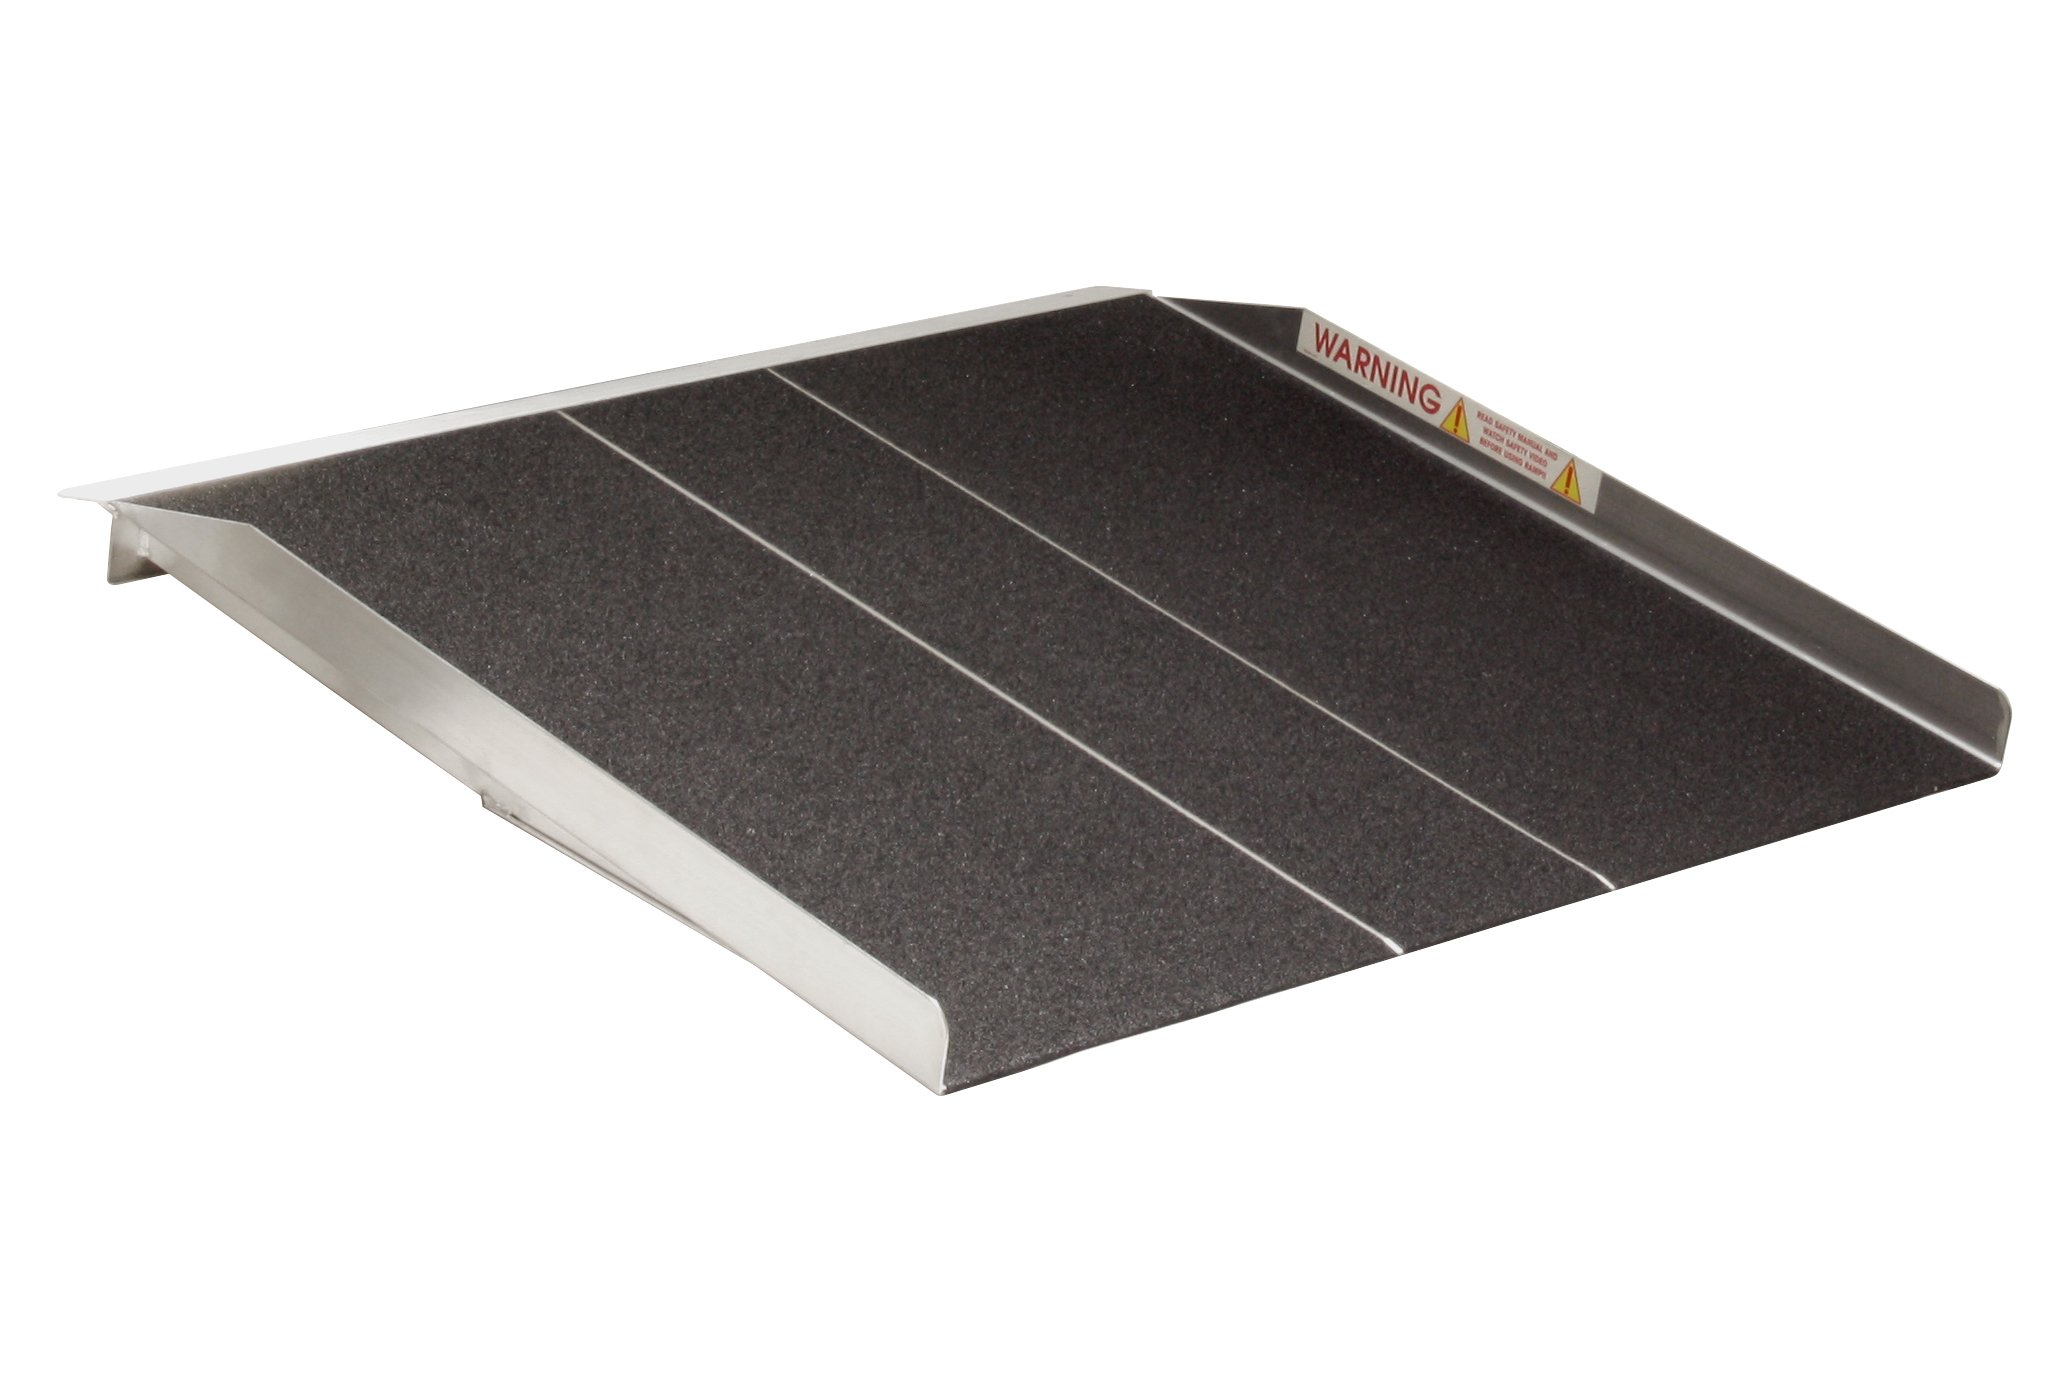 Prairie View Industries SL336 Solid Ramp, 3 ft x 36 in by Prairie View Industries